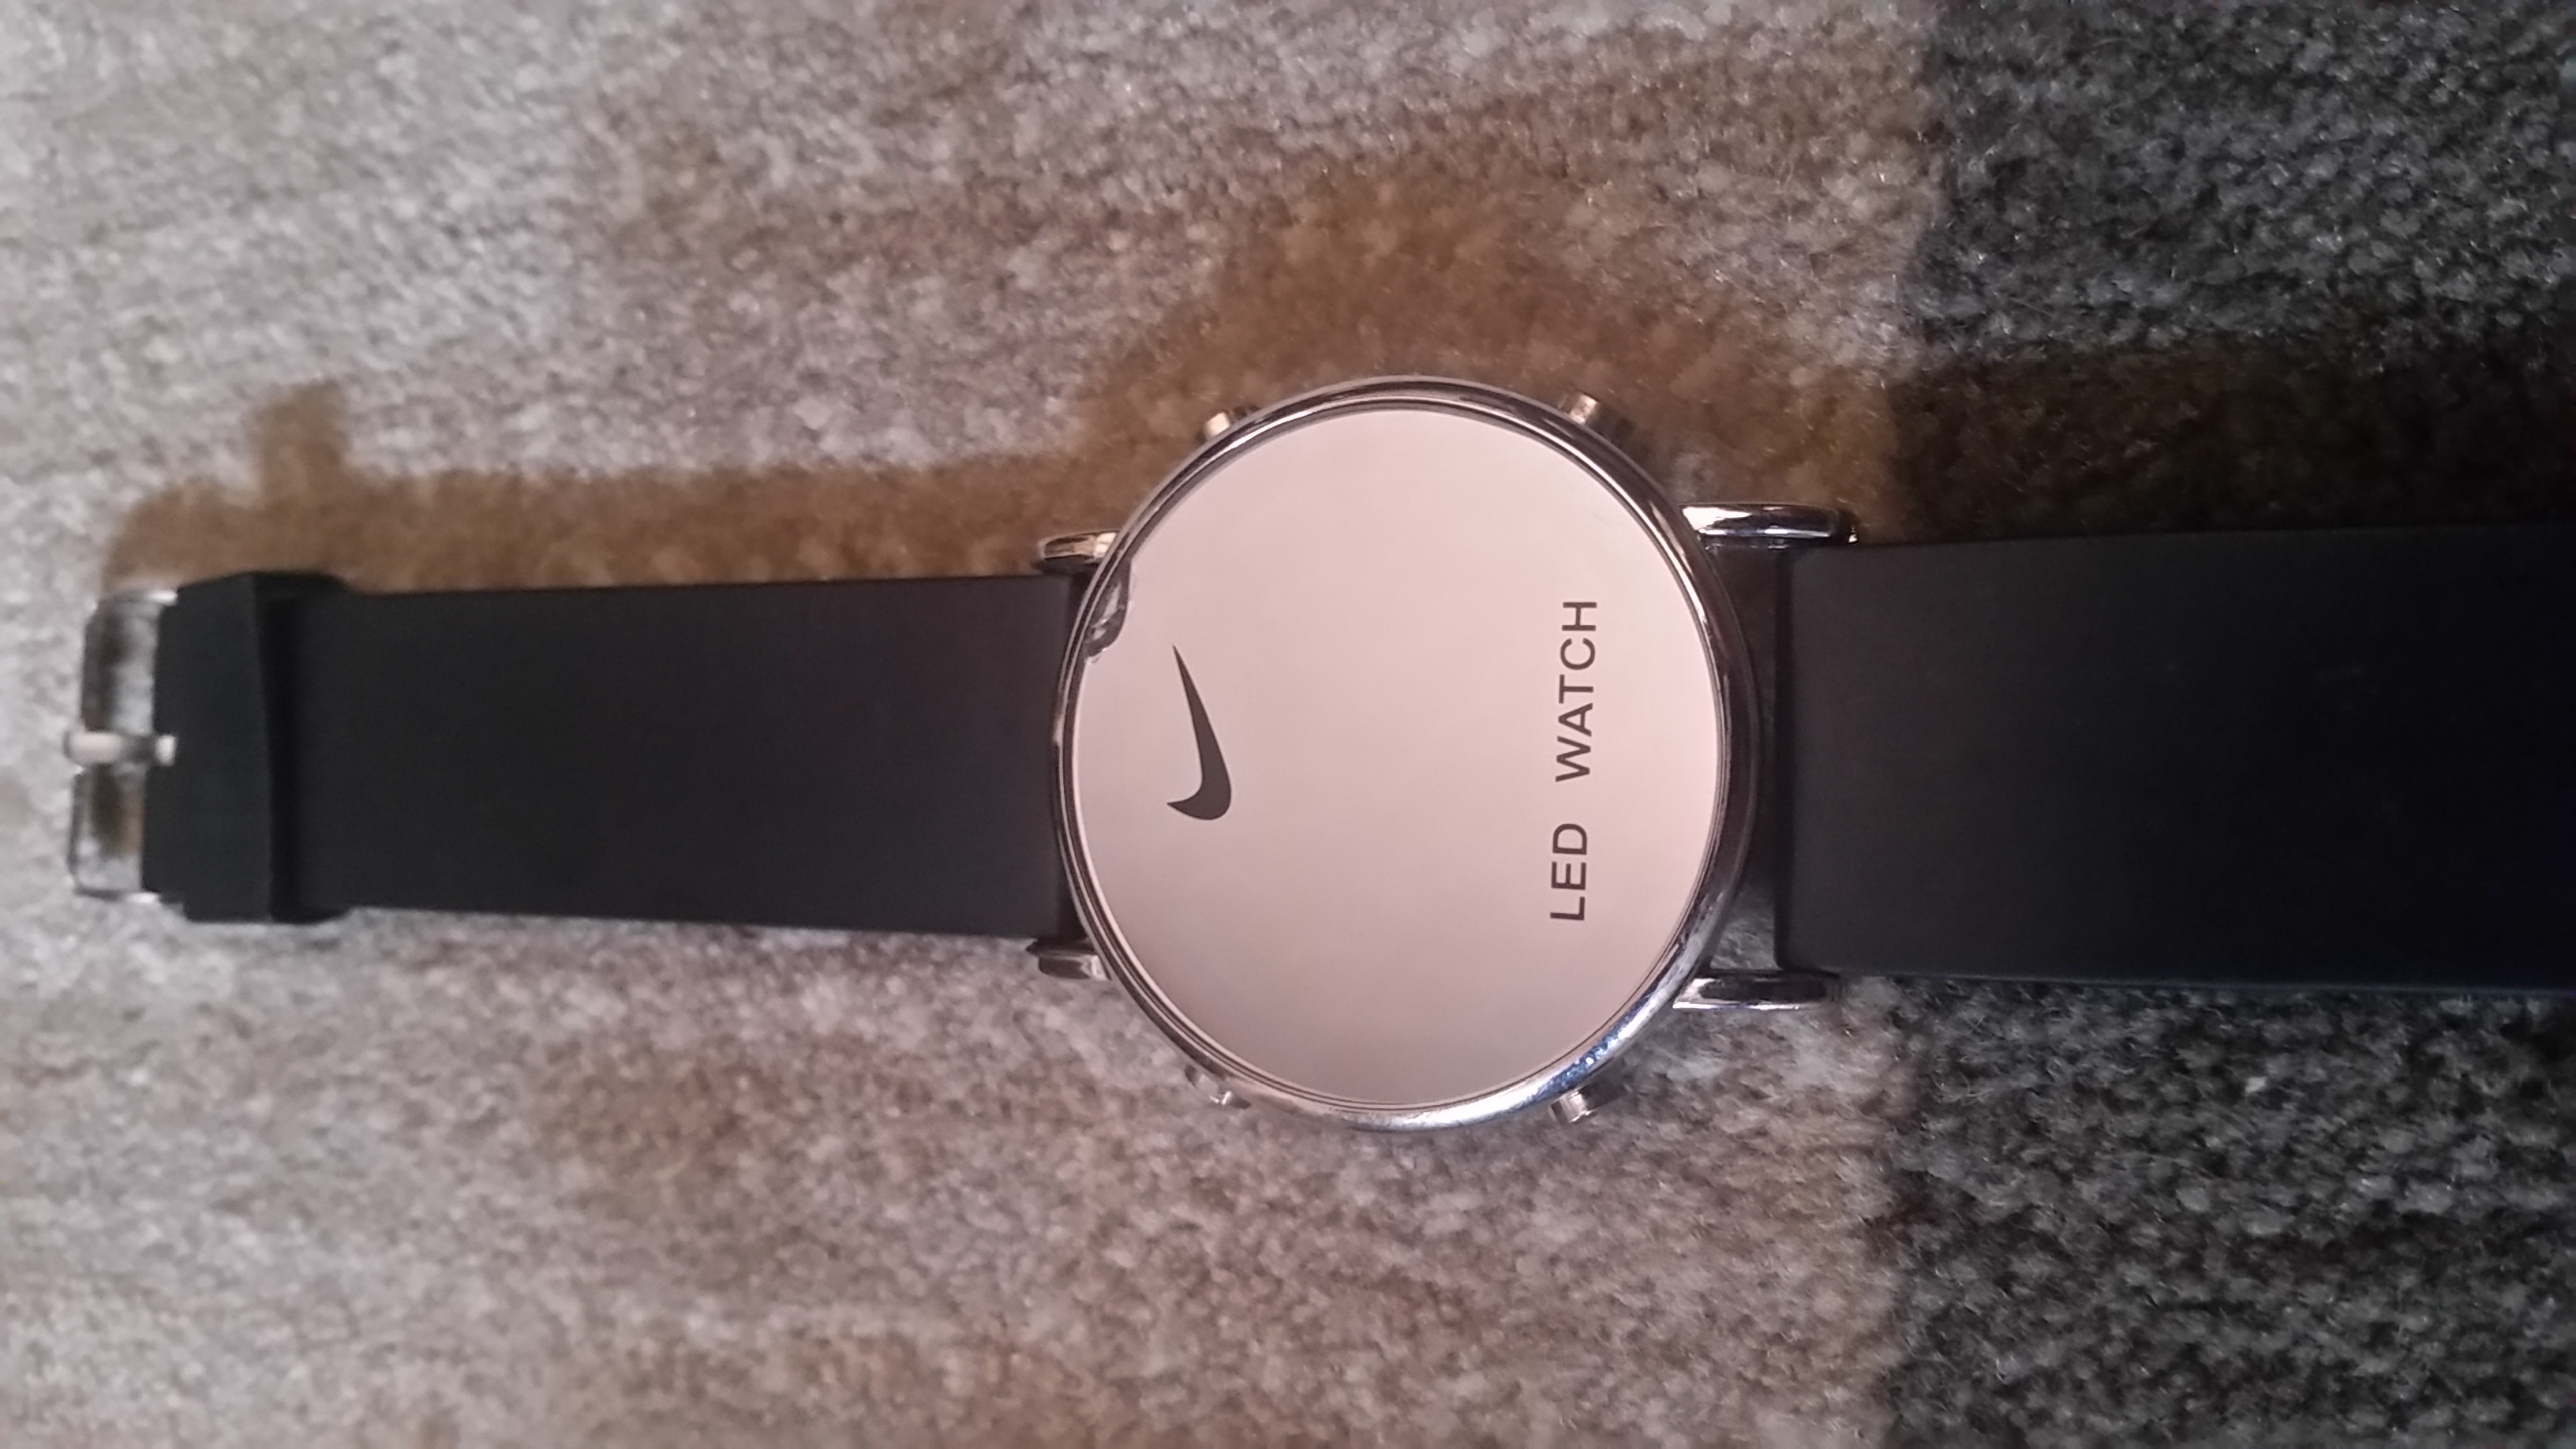 W Mega Find more Euc - Men's Nike Led Watch for sale at up to 90% off MJ73